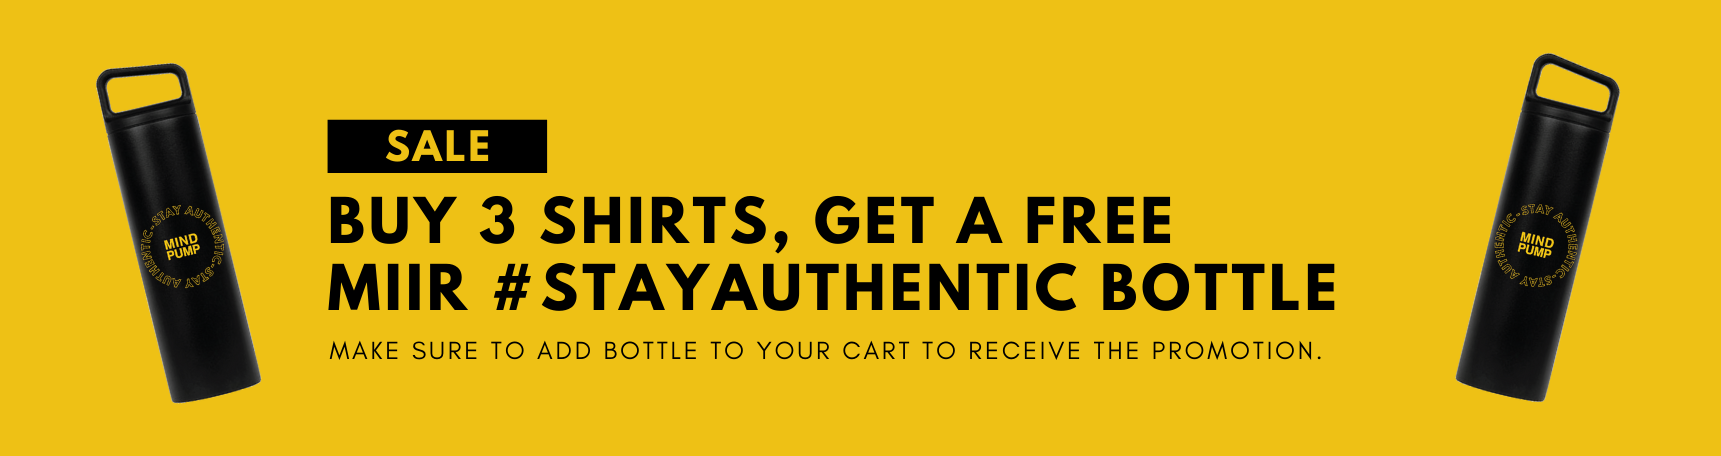 BUY 3 SHIRTS, GET A FREE MIIR #STAYAUTHENTIC BOTTLE